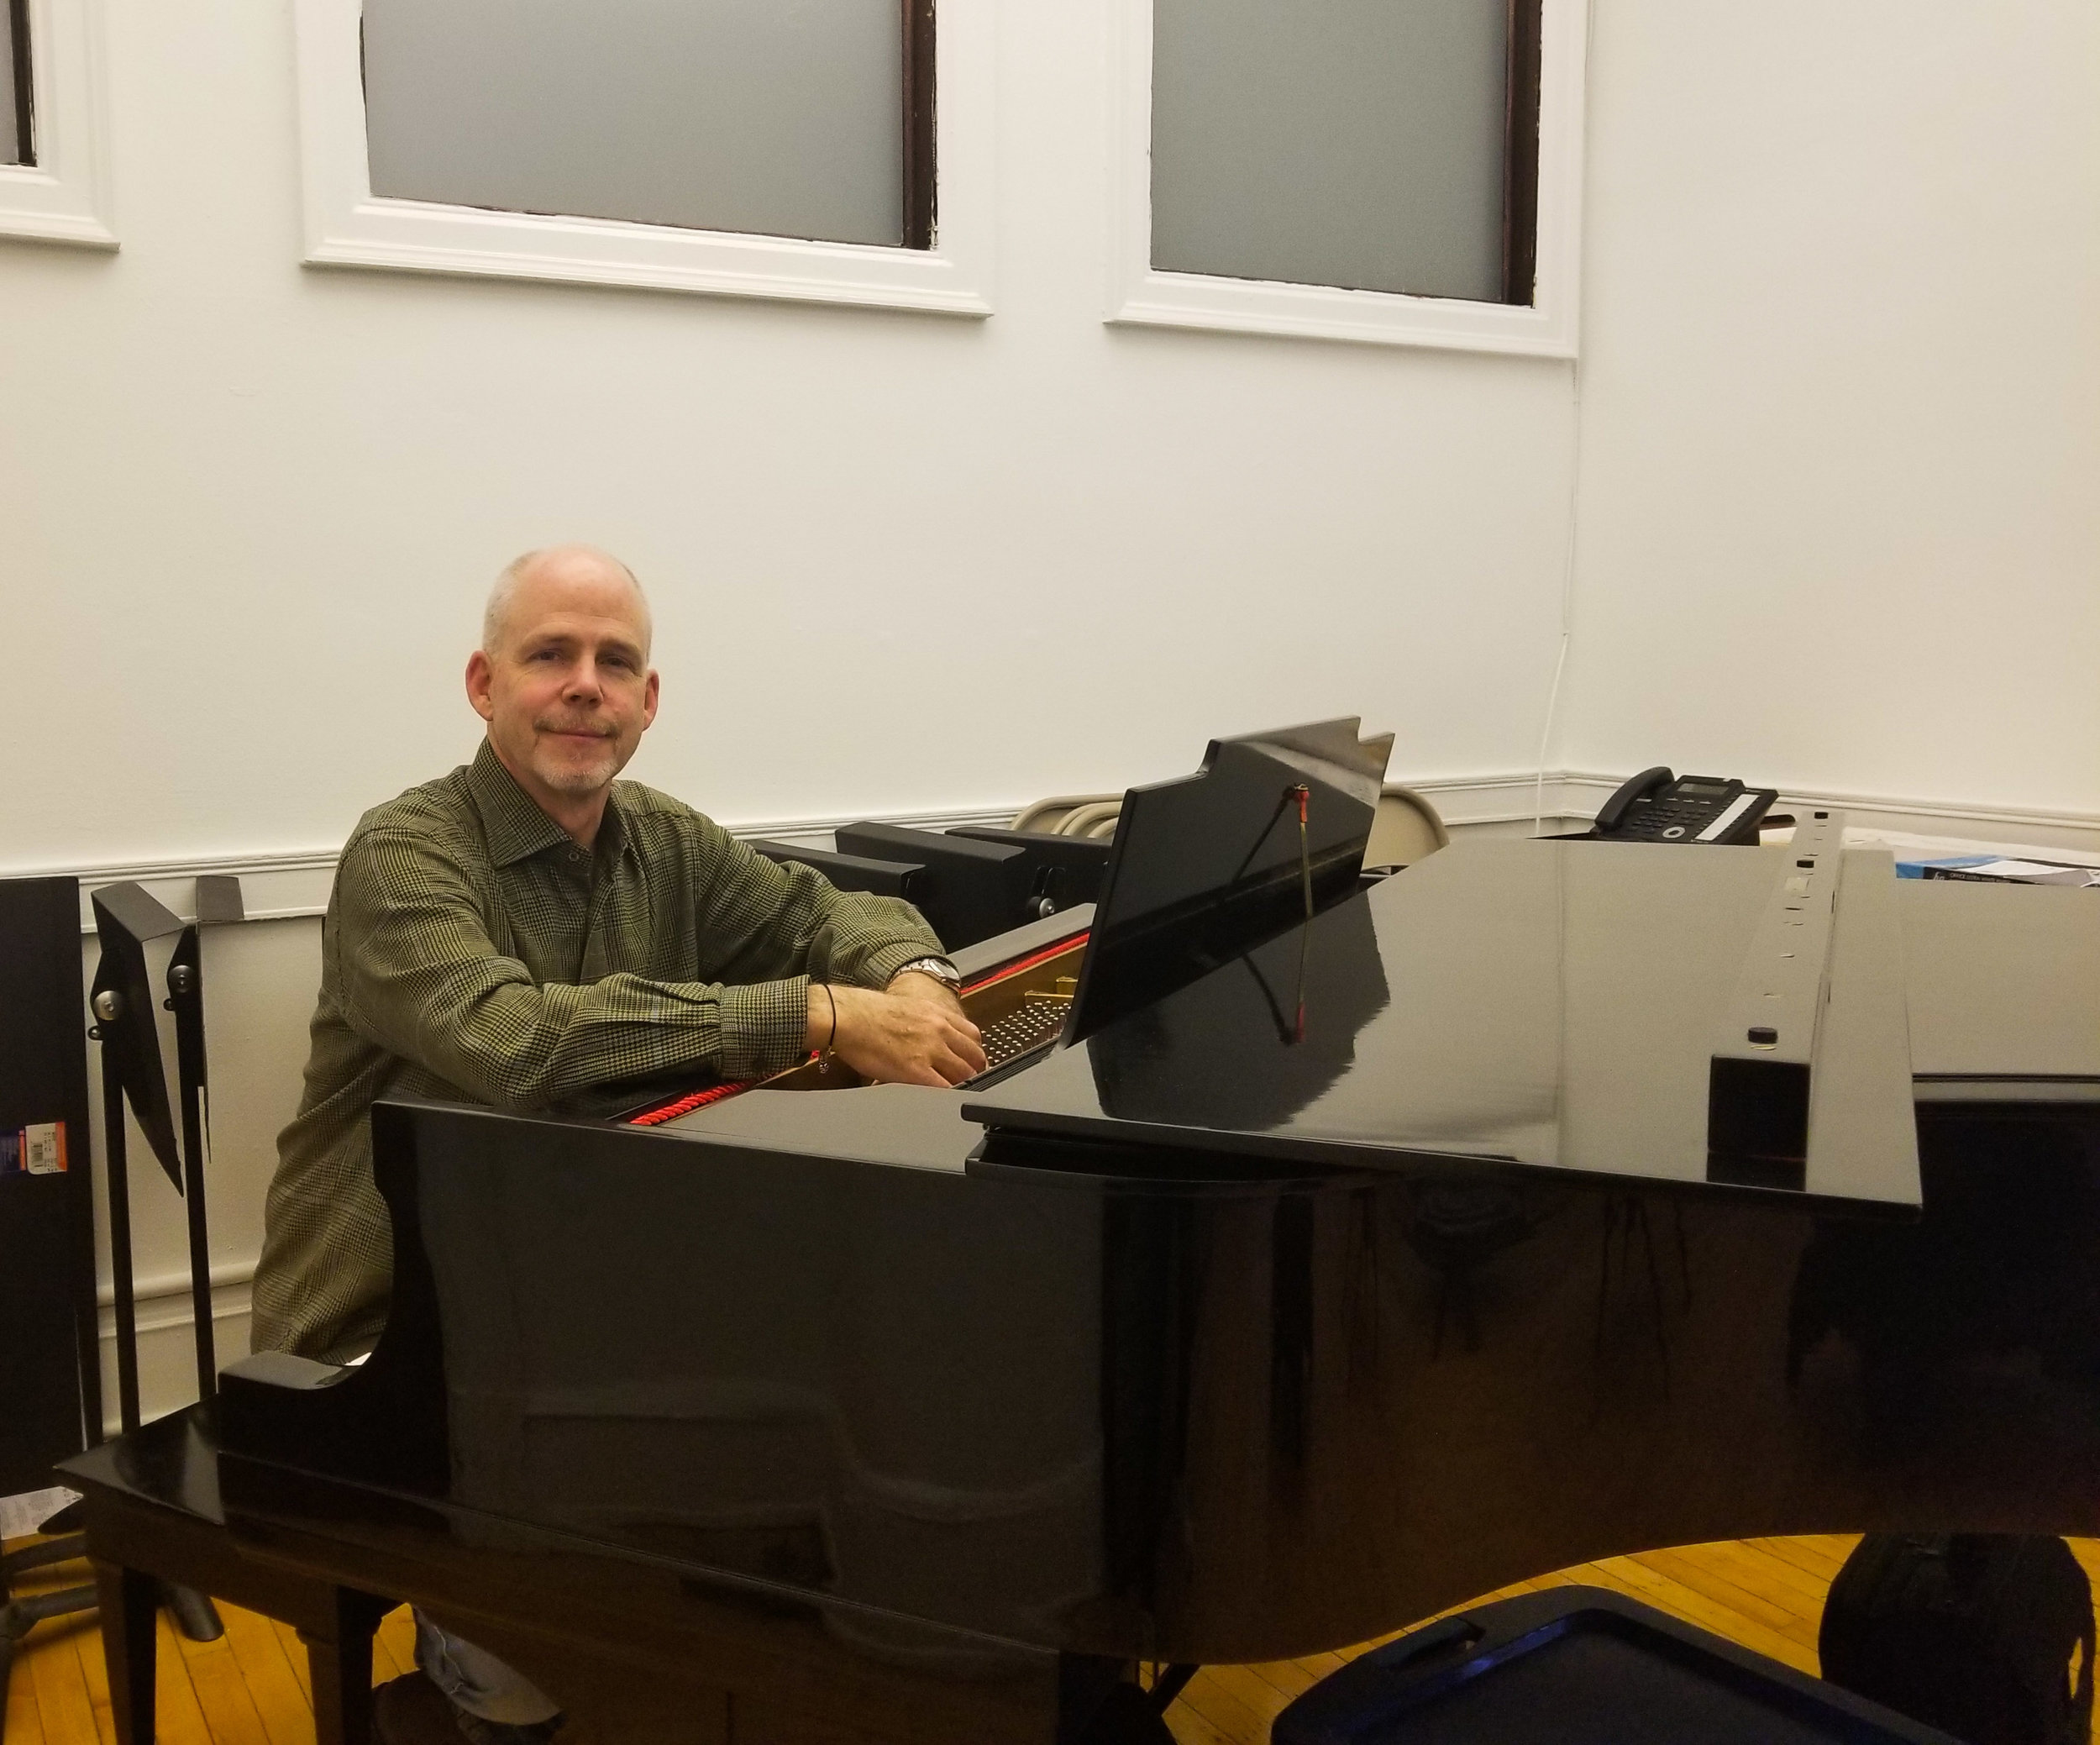 Stephen Burns, the founder and artistic director of Fulcrum Point